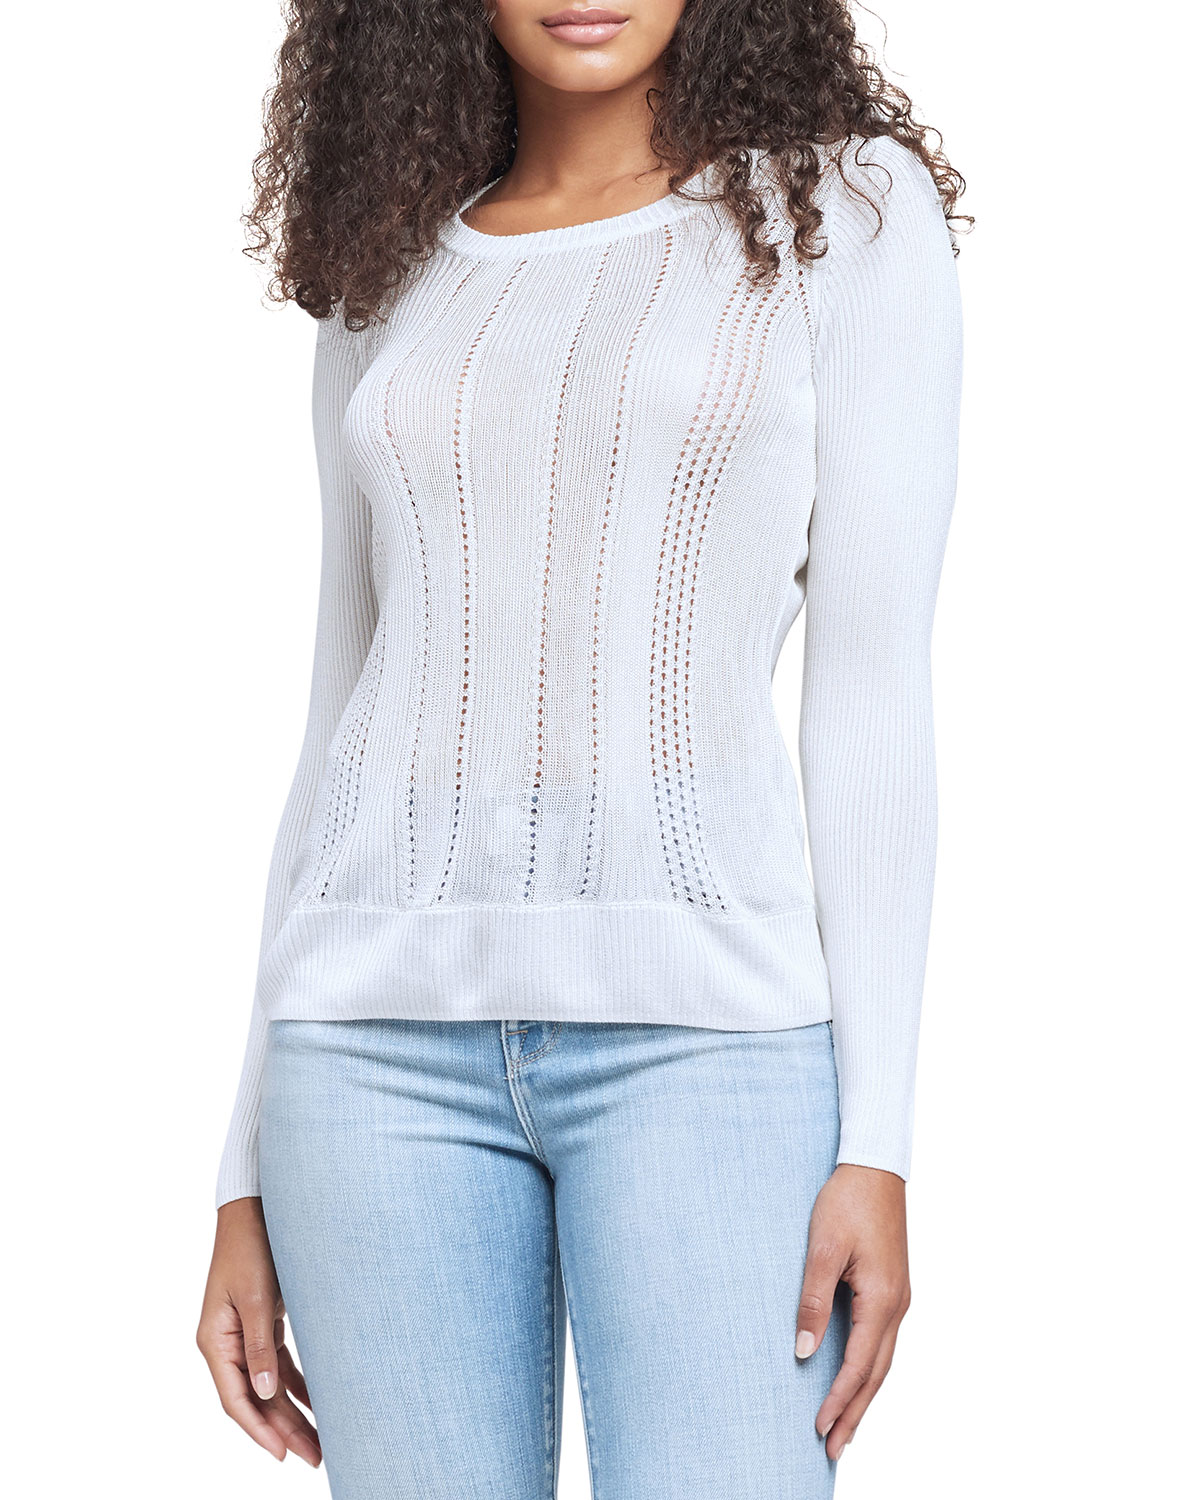 Whitley Pullover Sweater